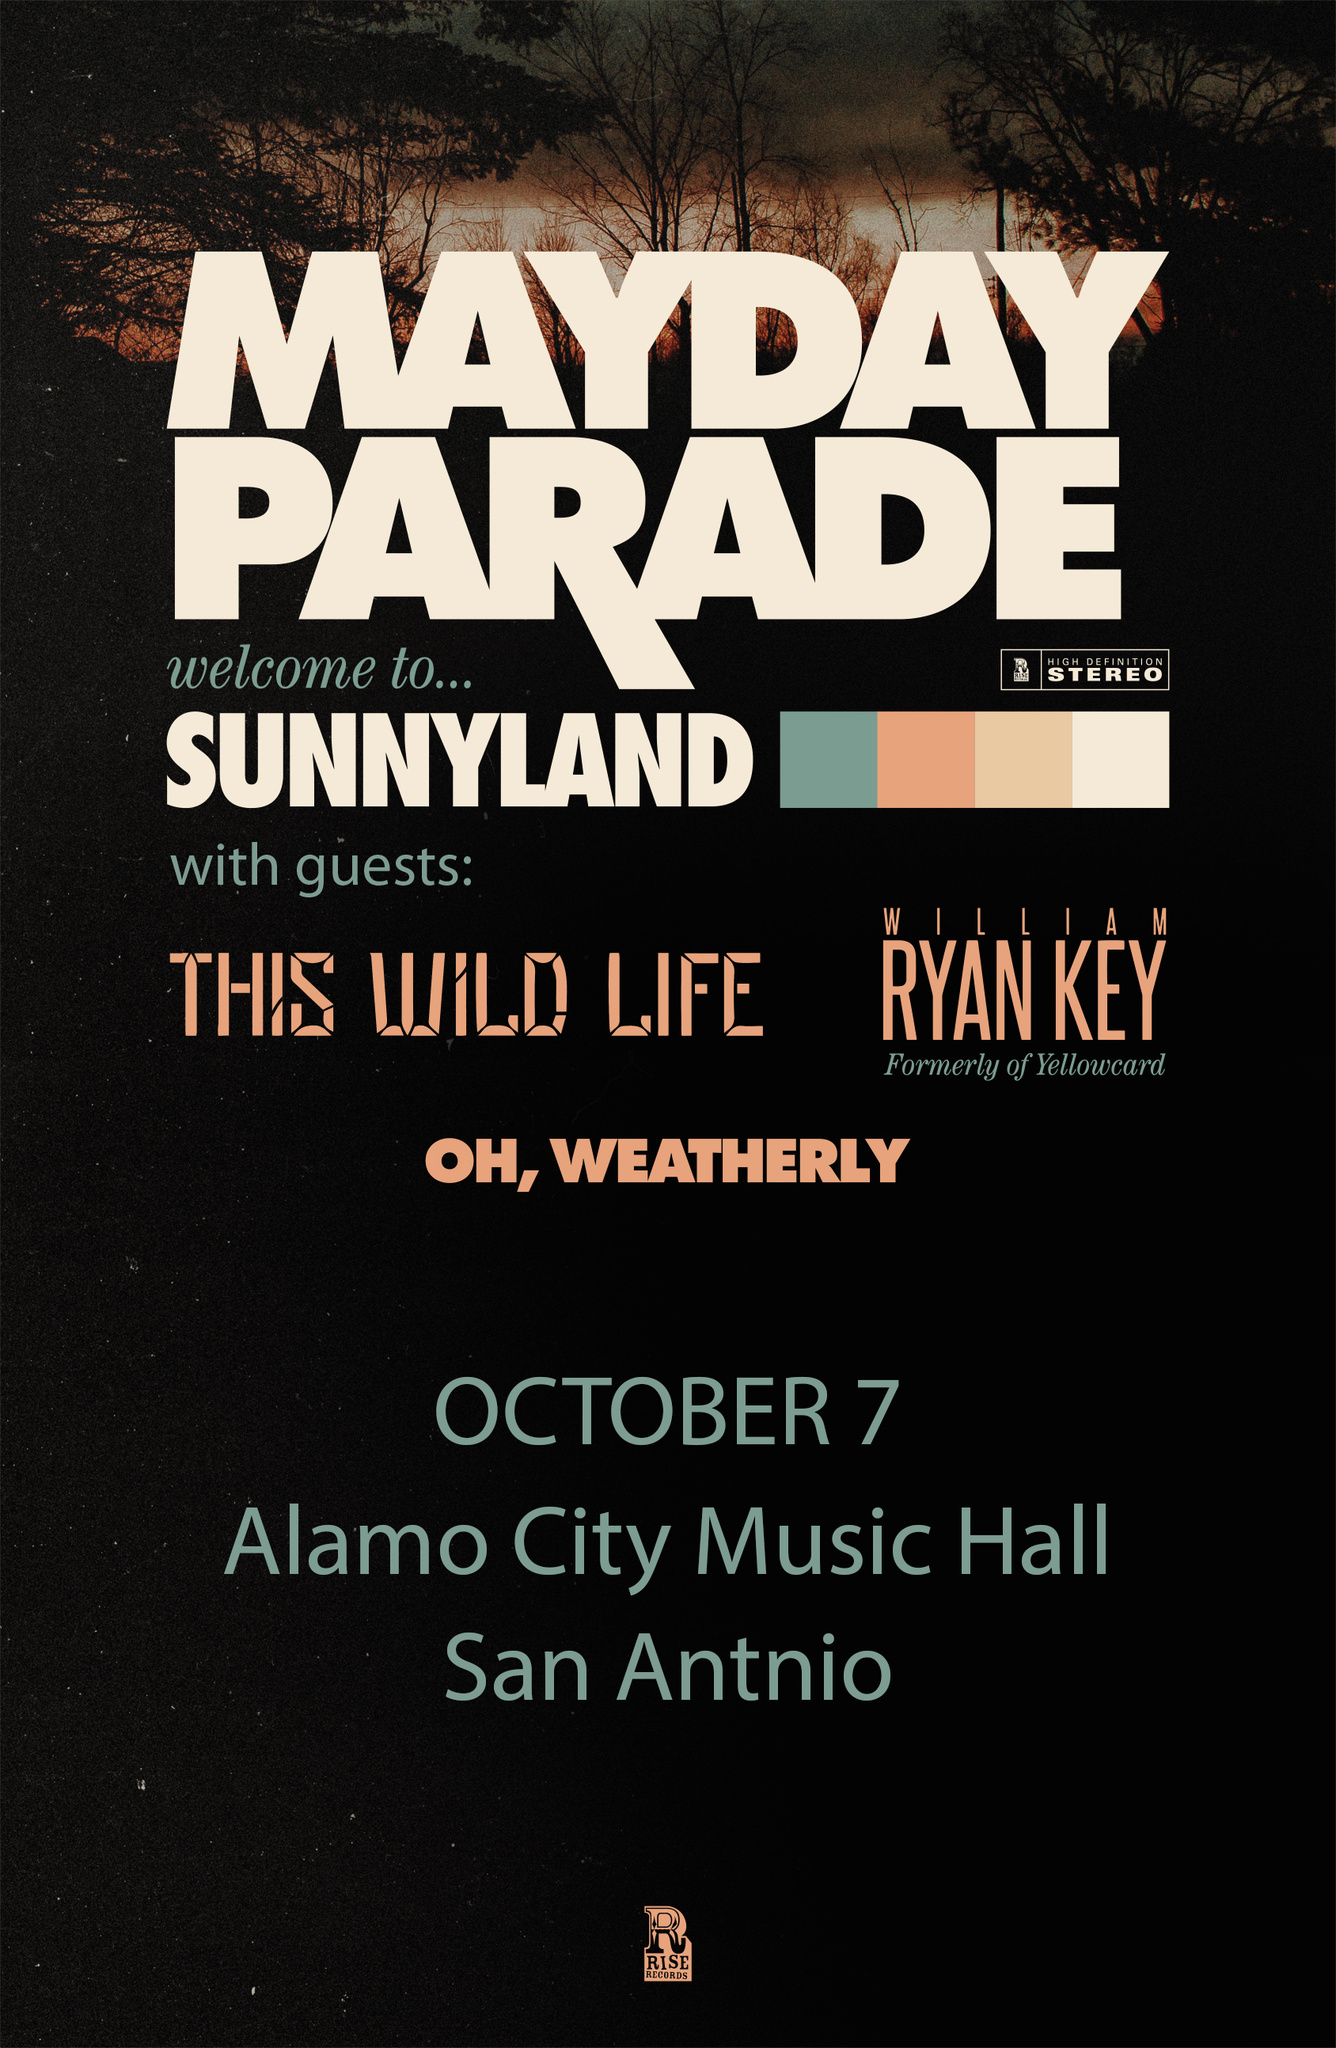 image for event Mayday Parade, This Wild Life, William Ryan Key, and Oh, Weatherly